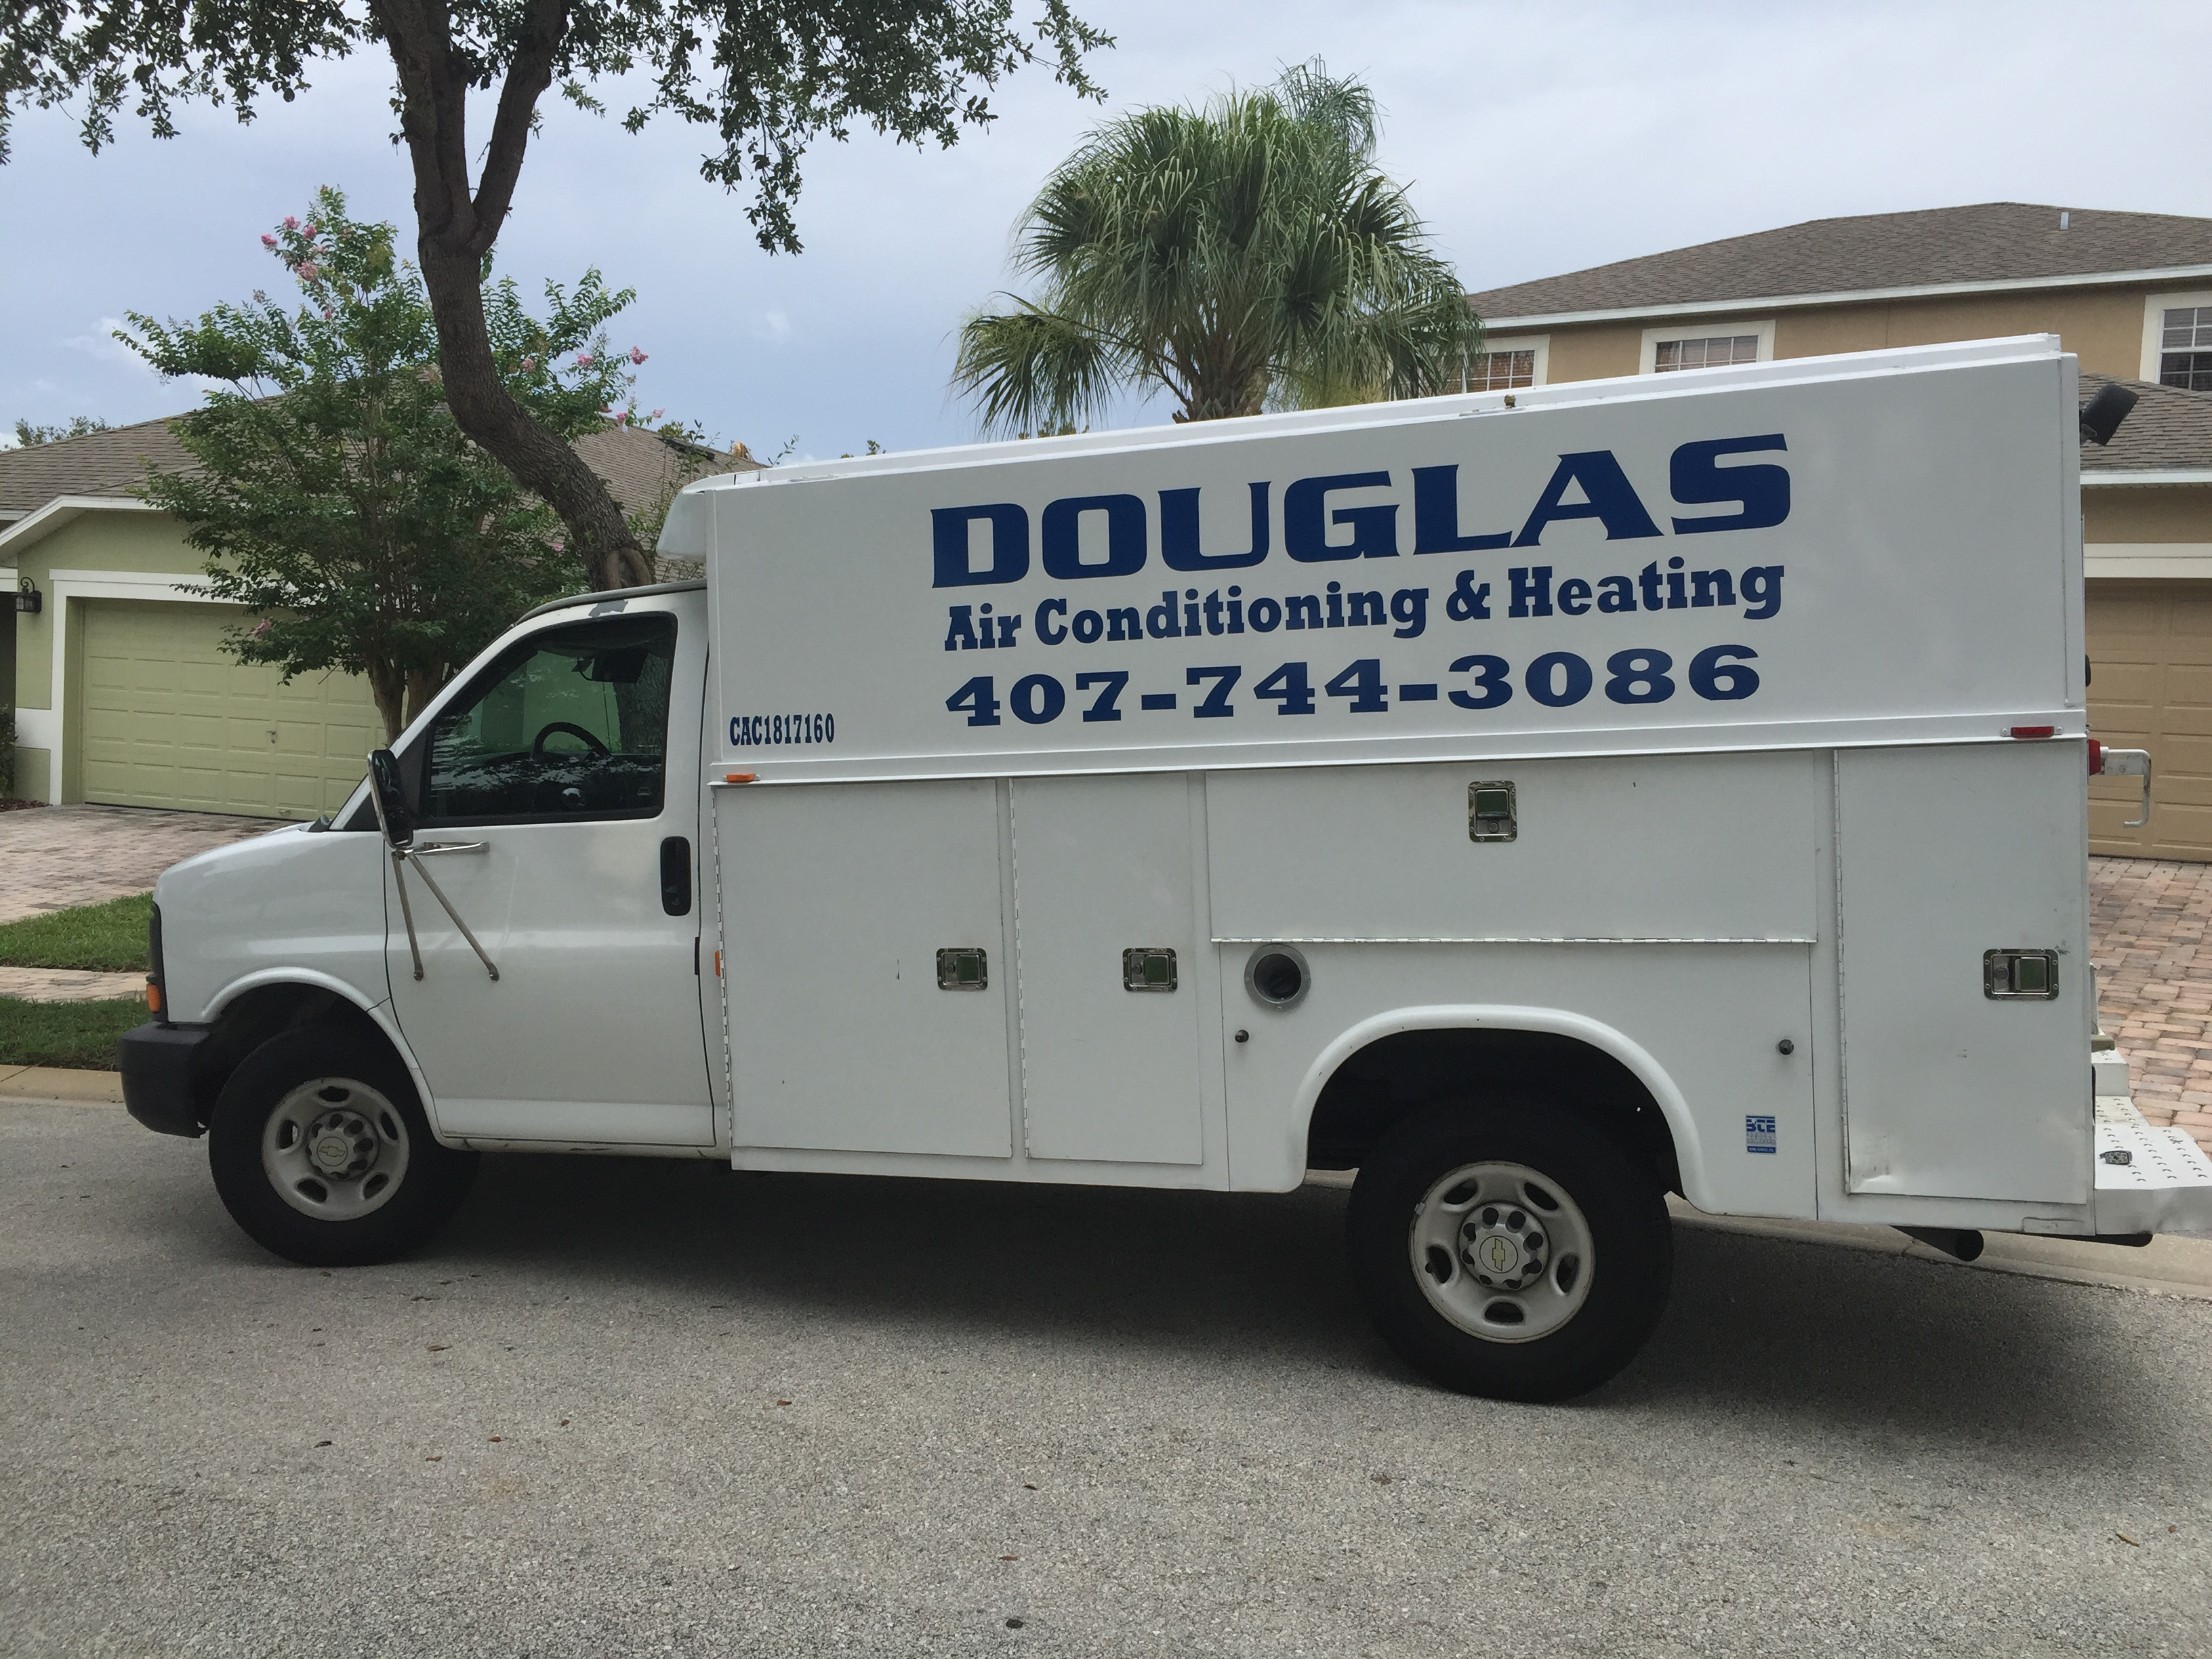 Douglas Air Conditioning and Heating, LLC image 0